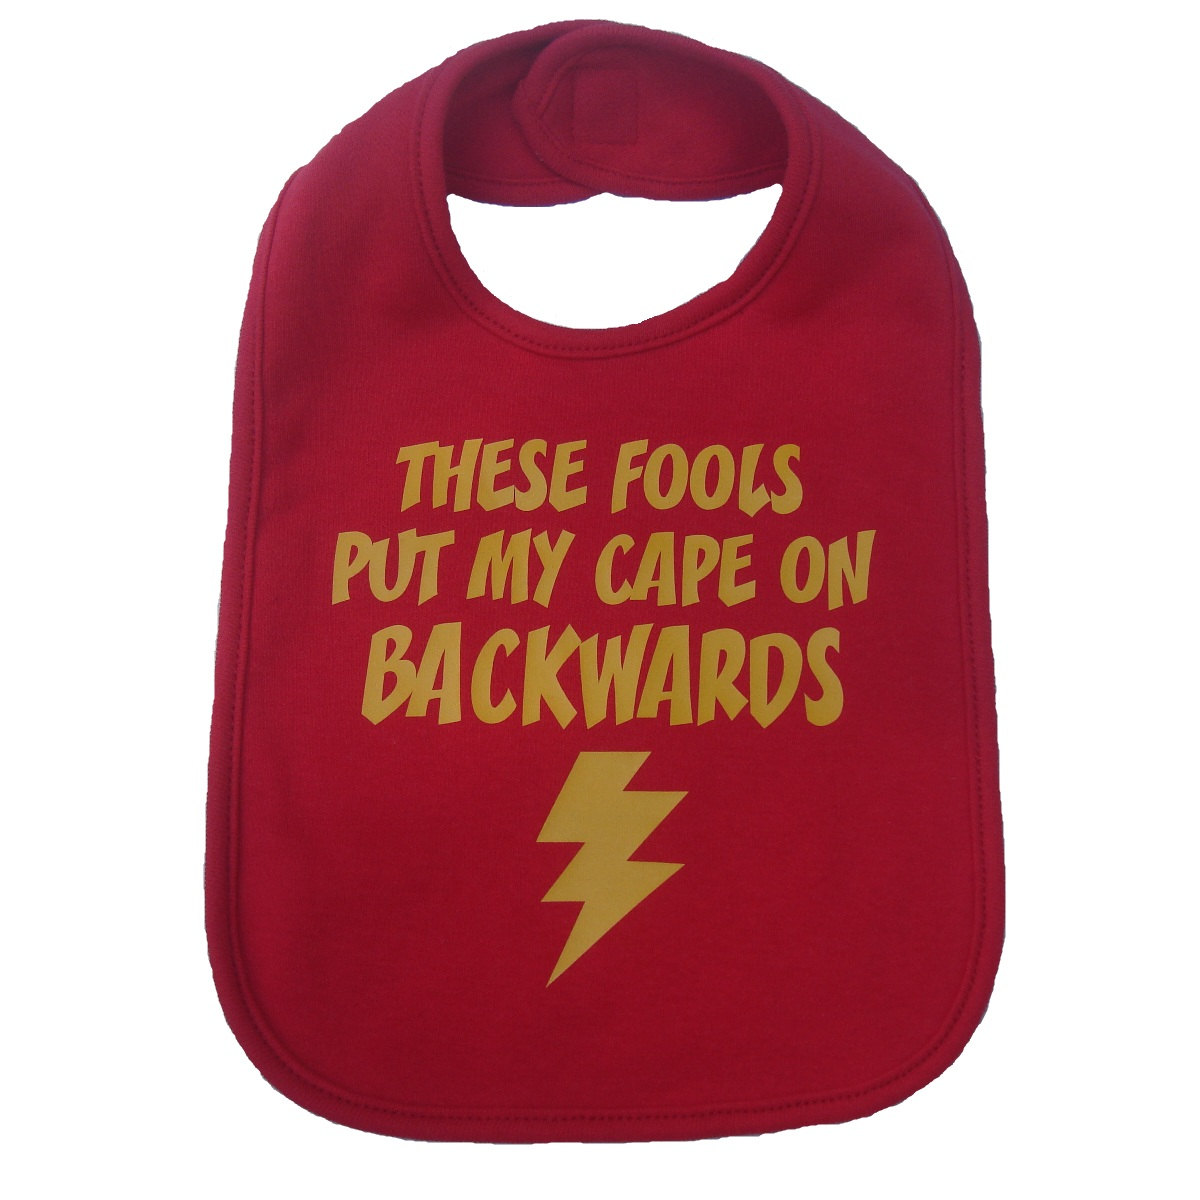 These fools put my cape on backwards funny baby bib by meandmy3boys